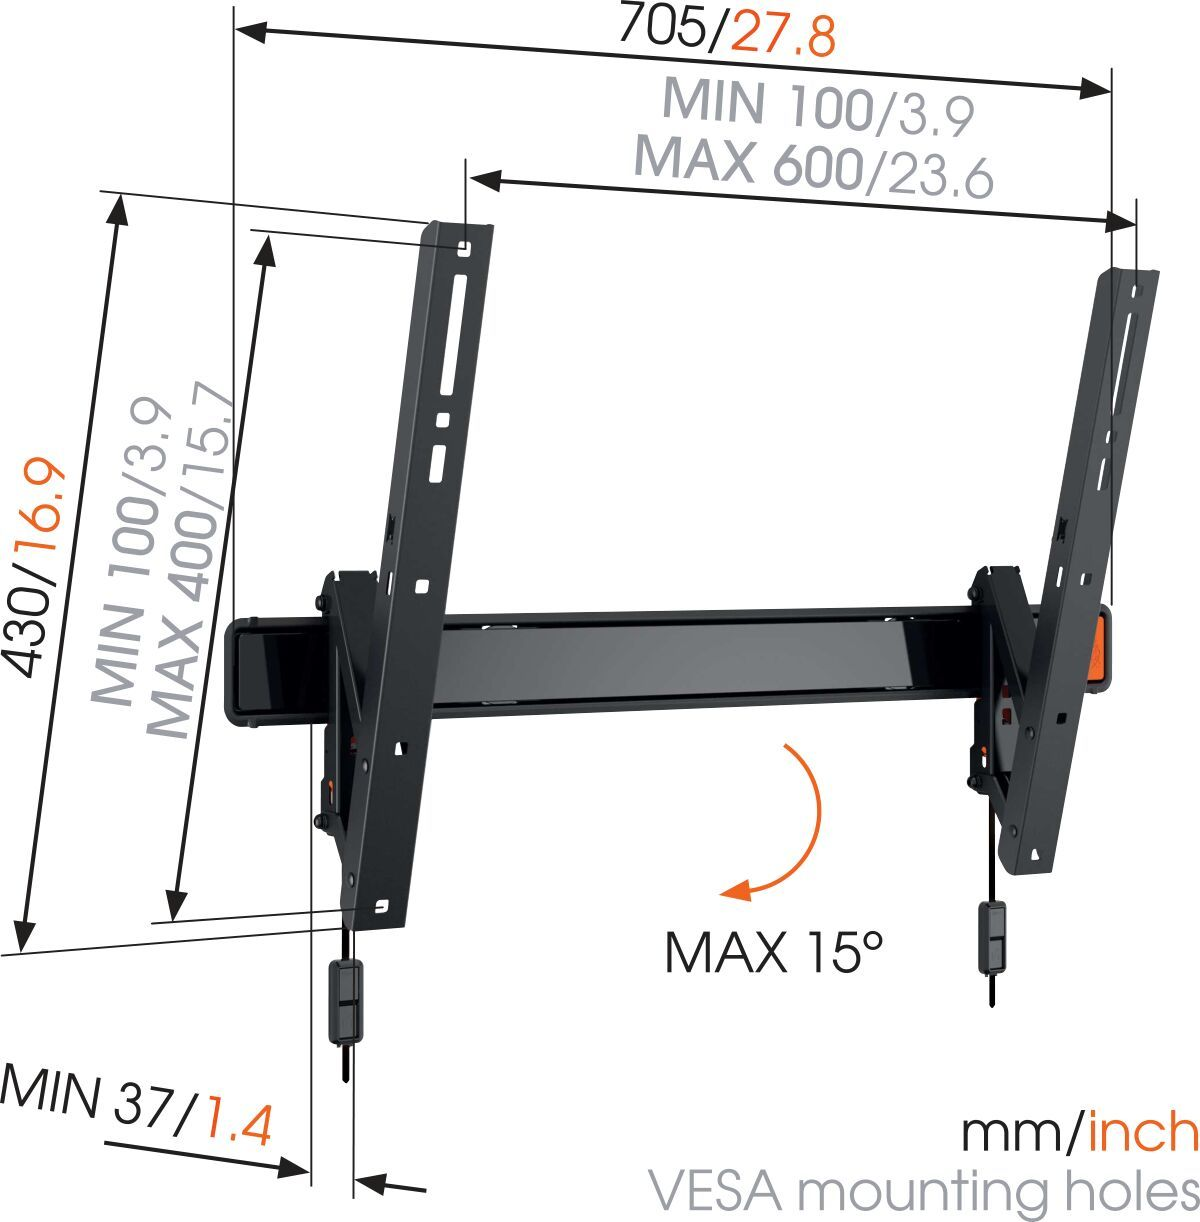 Vogel's WALL 2315 Soporte TV Inclinable - Adecuado para televisores de 40 a 65 pulgadas hasta kg - Abatible hasta 15° - Dimensions